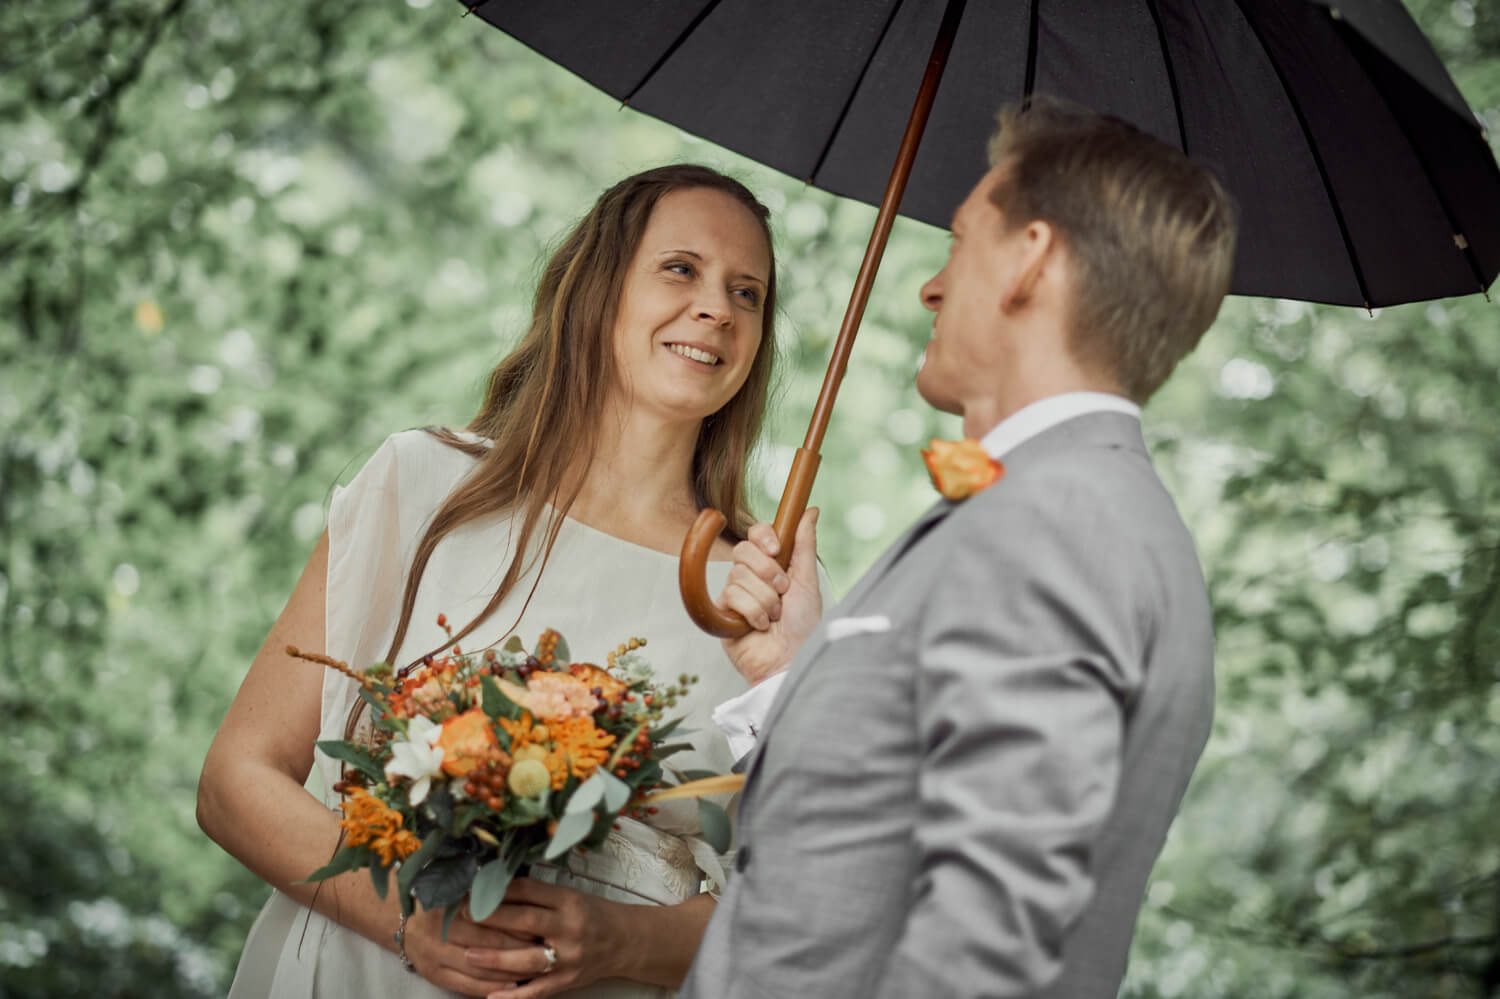 Eva, beautiful real bride under the rain in a Larimeloom wedding dress